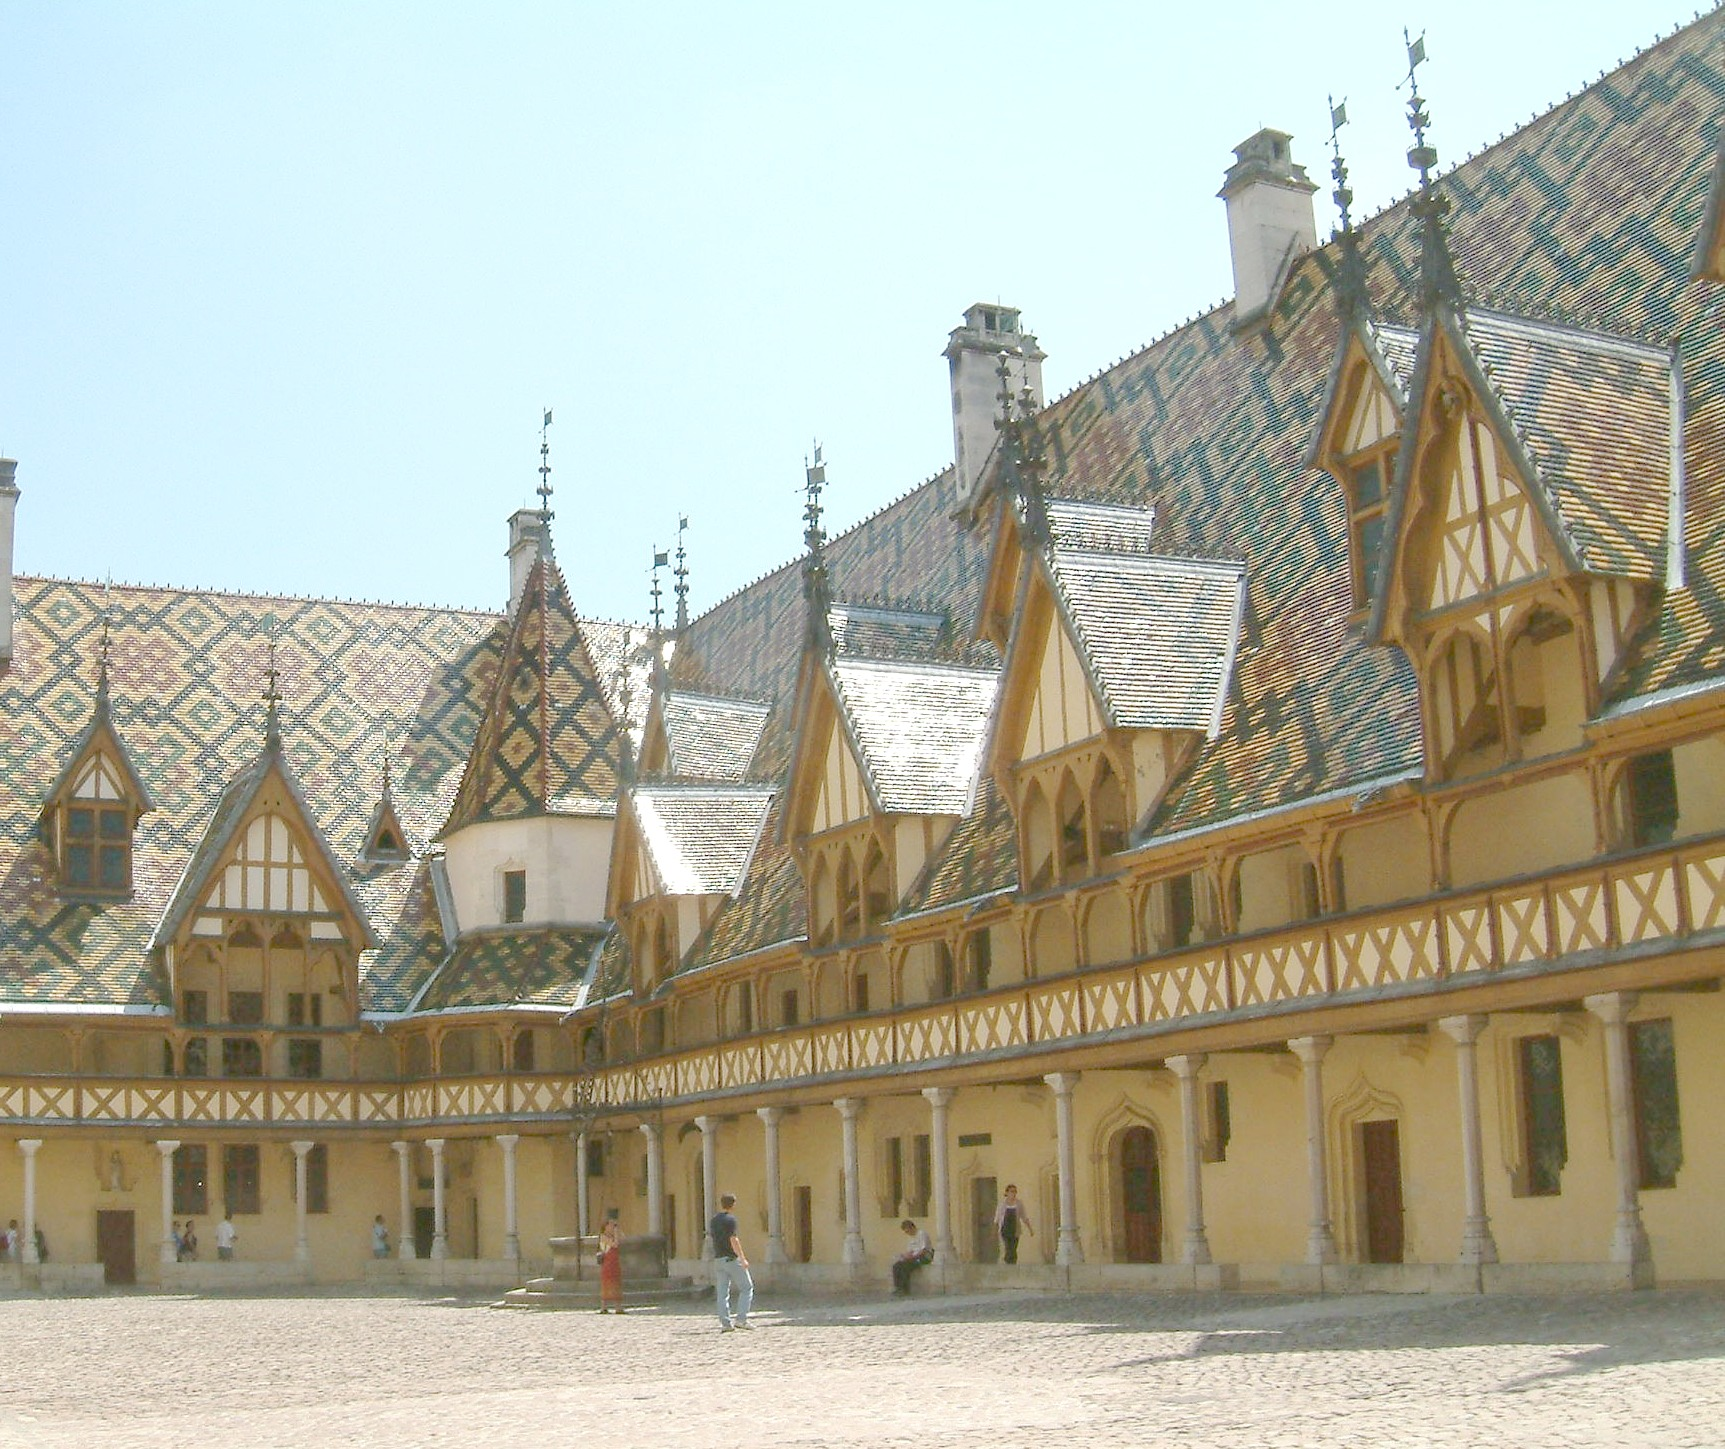 http://upload.wikimedia.org/wikipedia/commons/c/c2/Hospices_de_Beaune.jpg